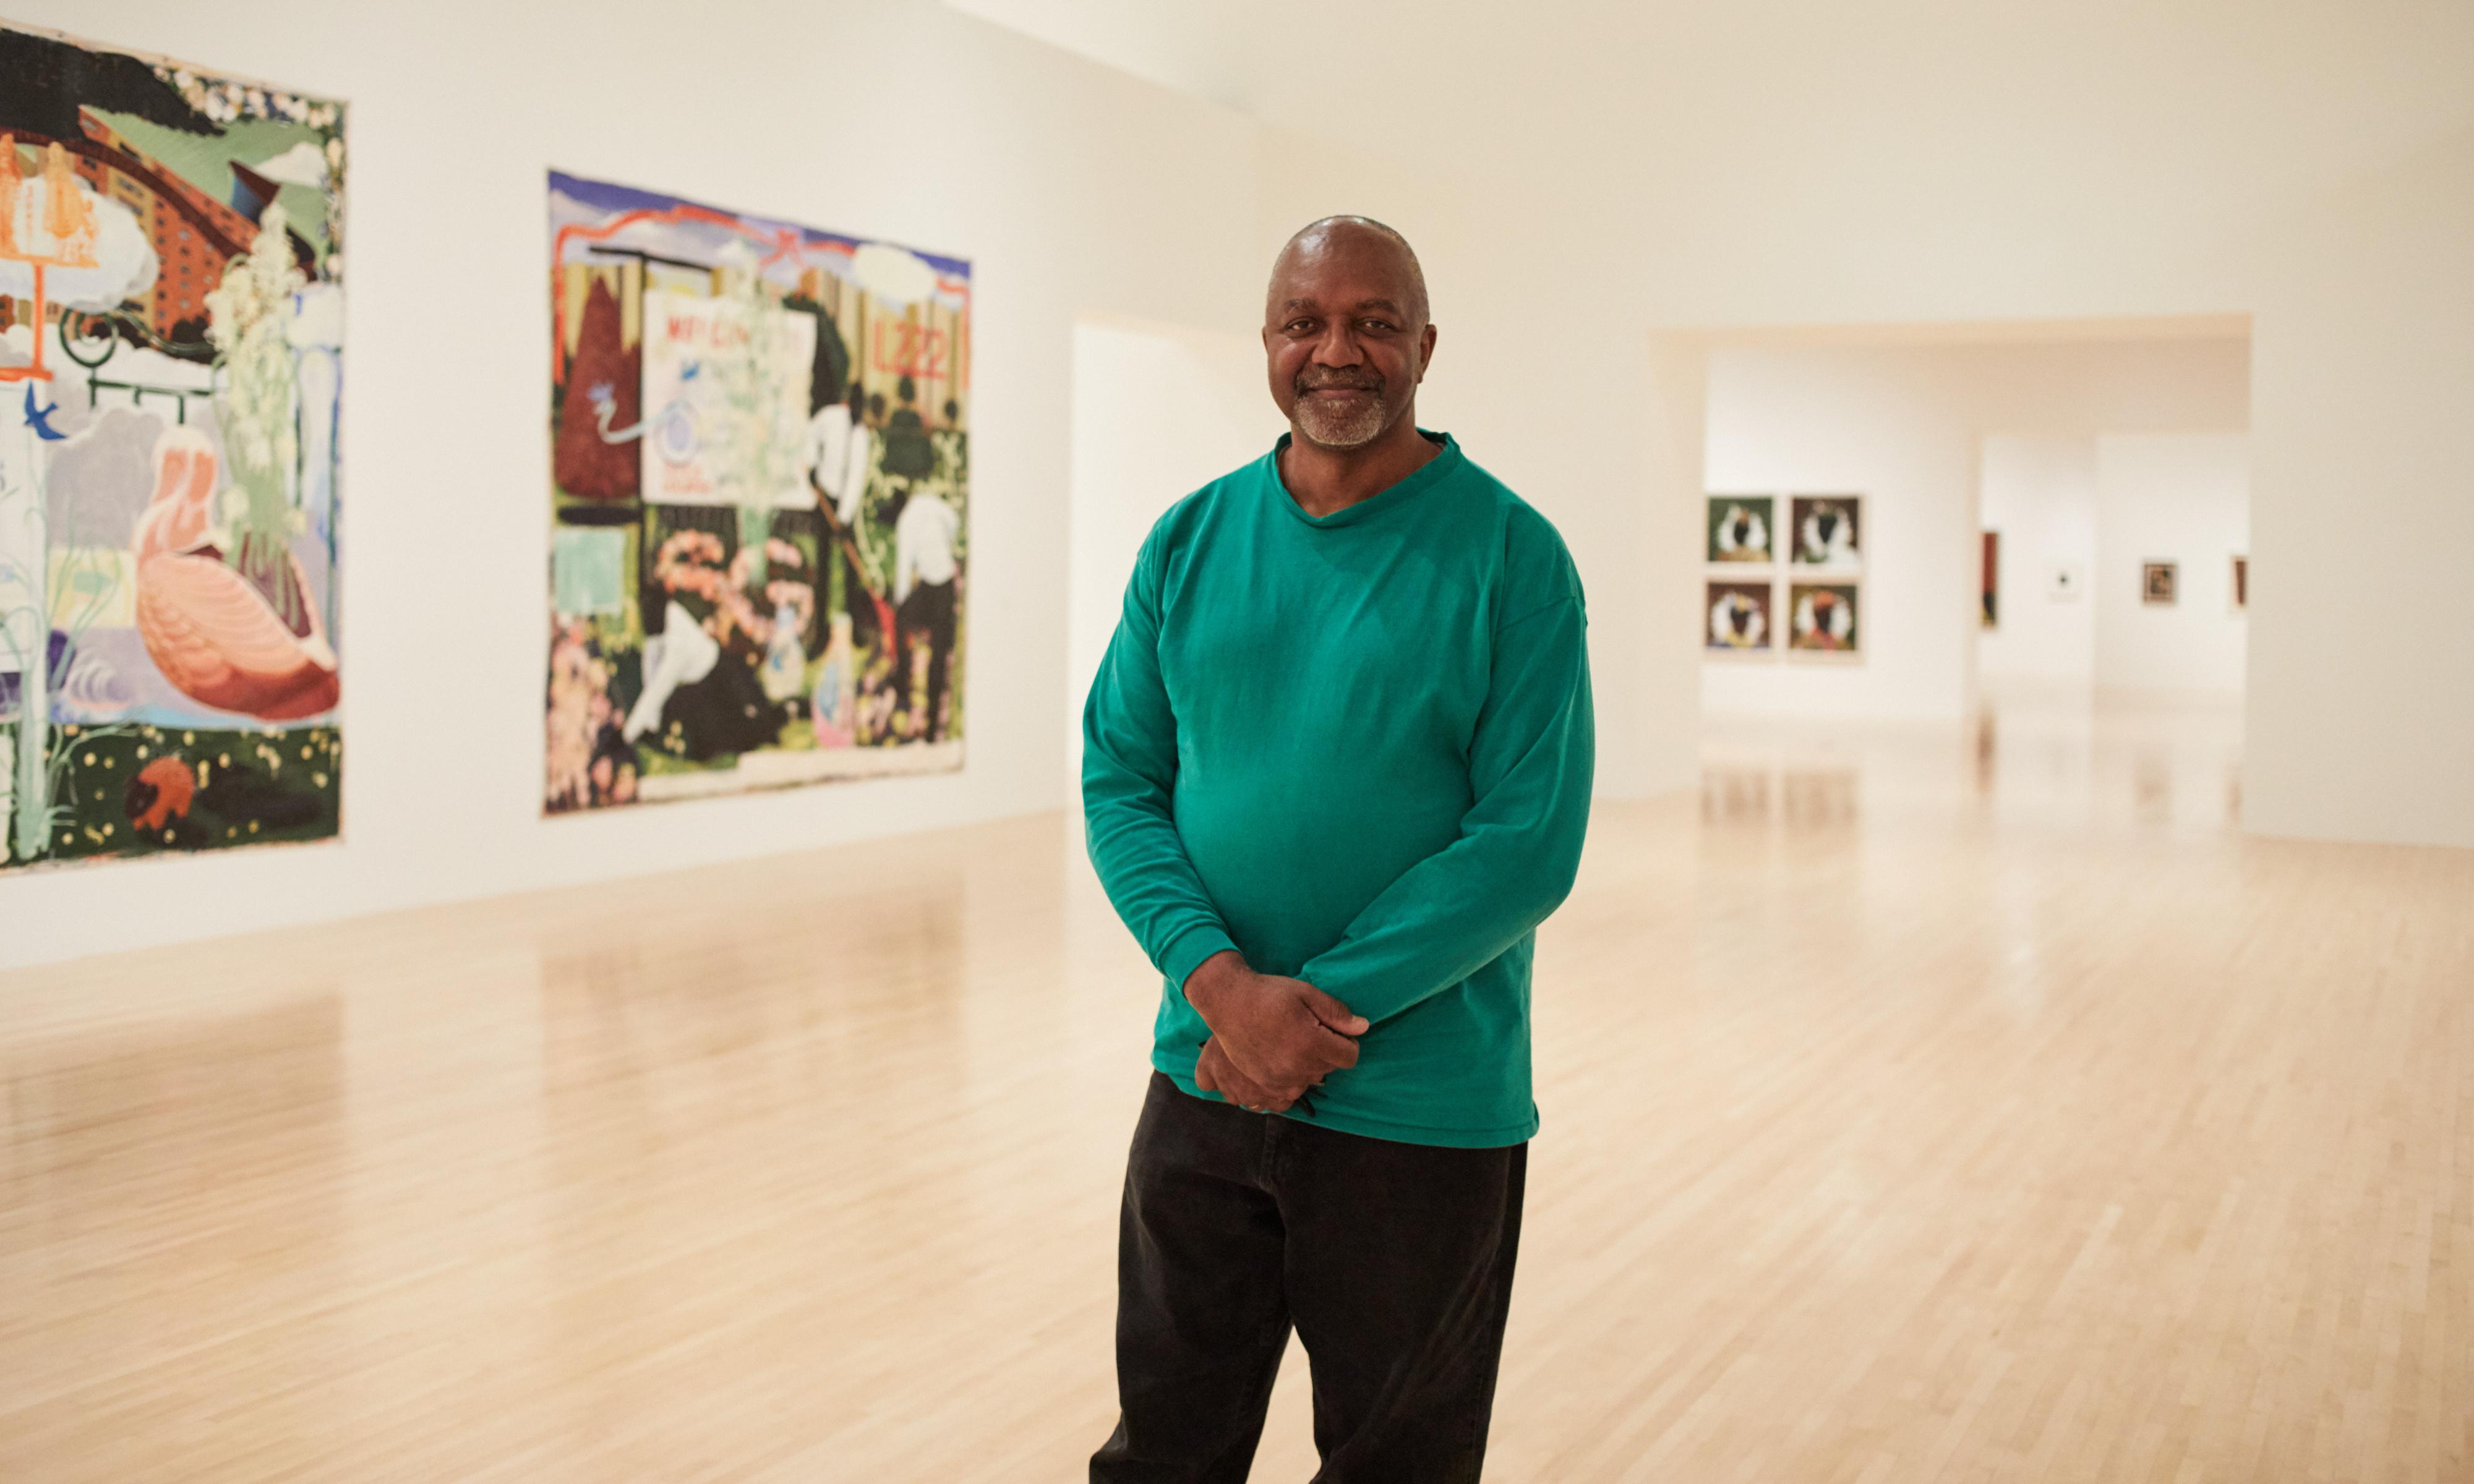 Kerry James Marshall named most influential contemporary artist